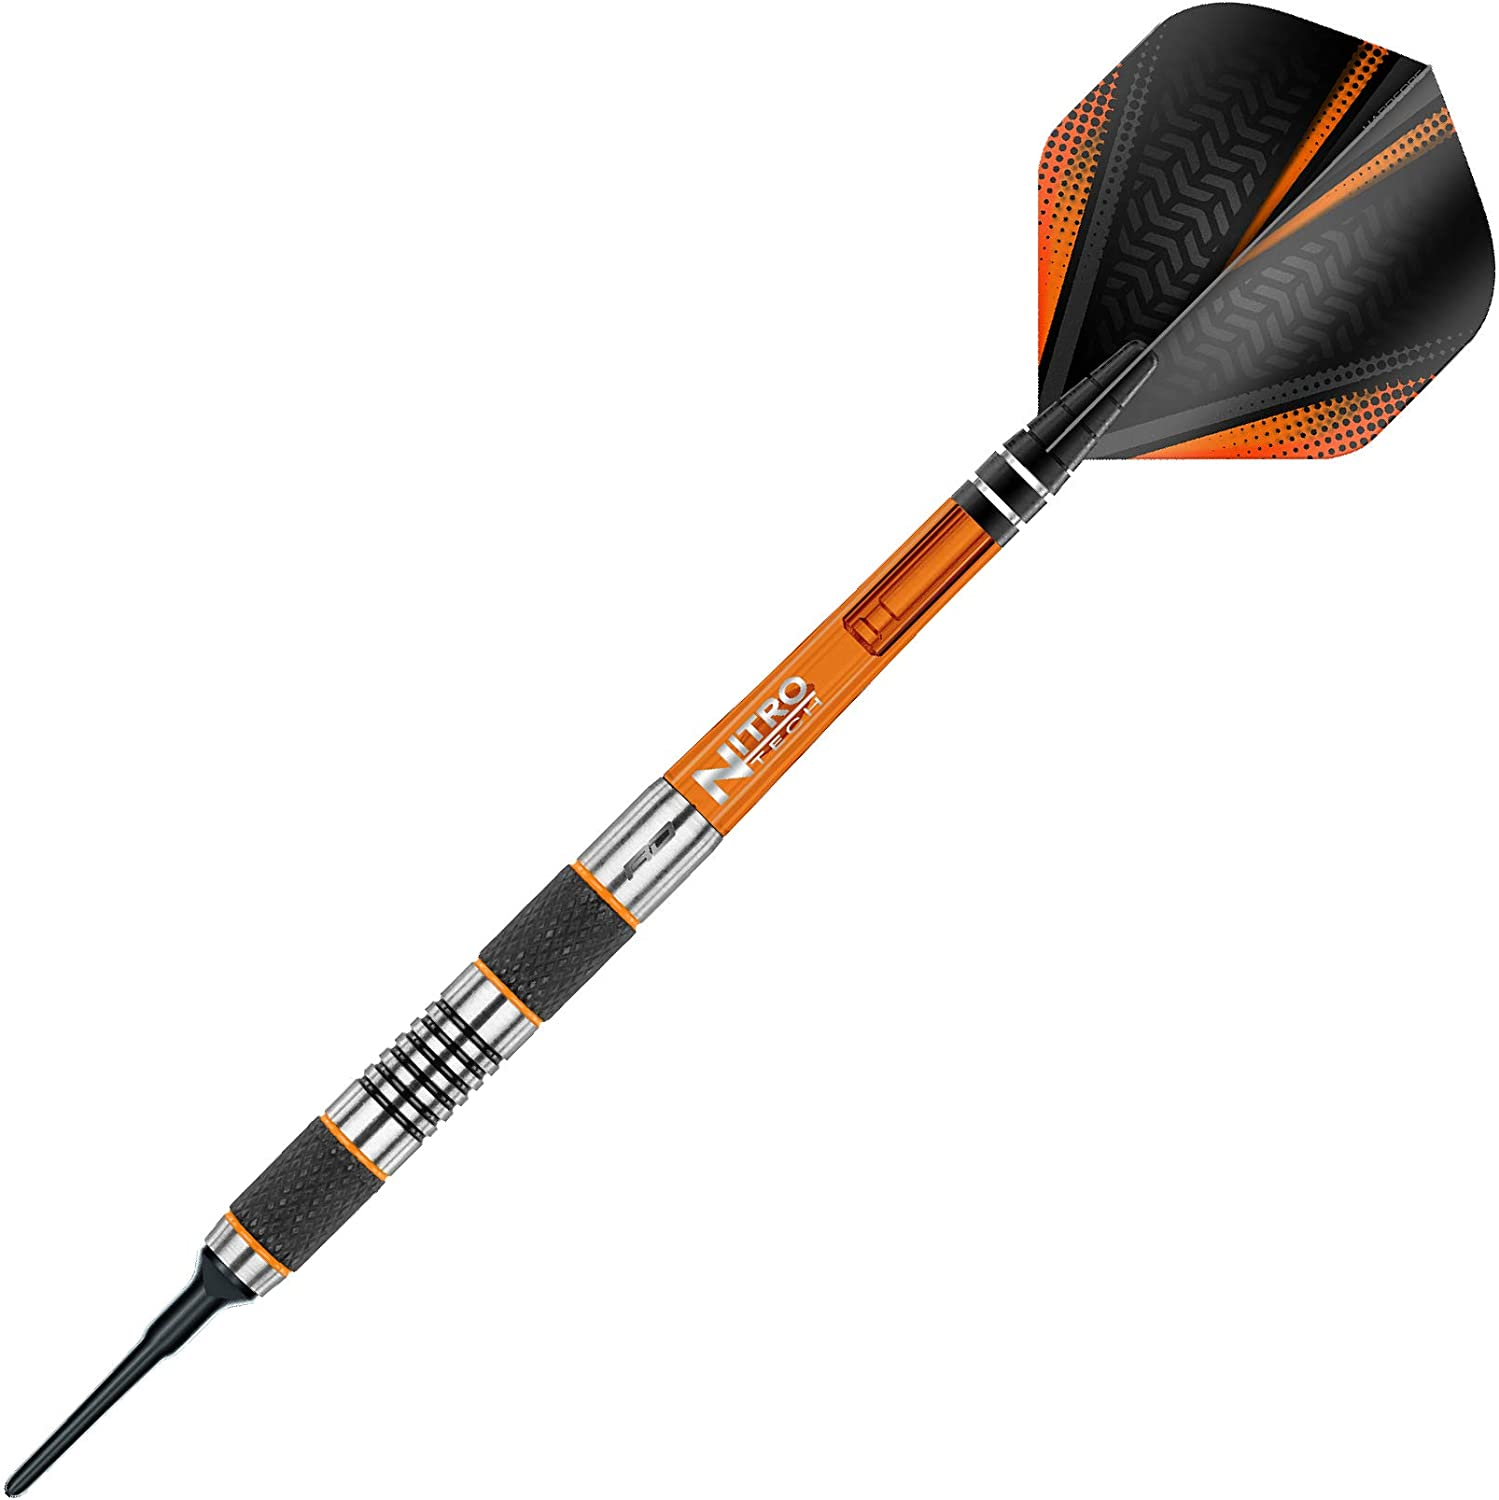 Tungsten Steel Soft Tip Darts Set with Flights and Stems 18g Red Dragon Amberjack Soft Tip